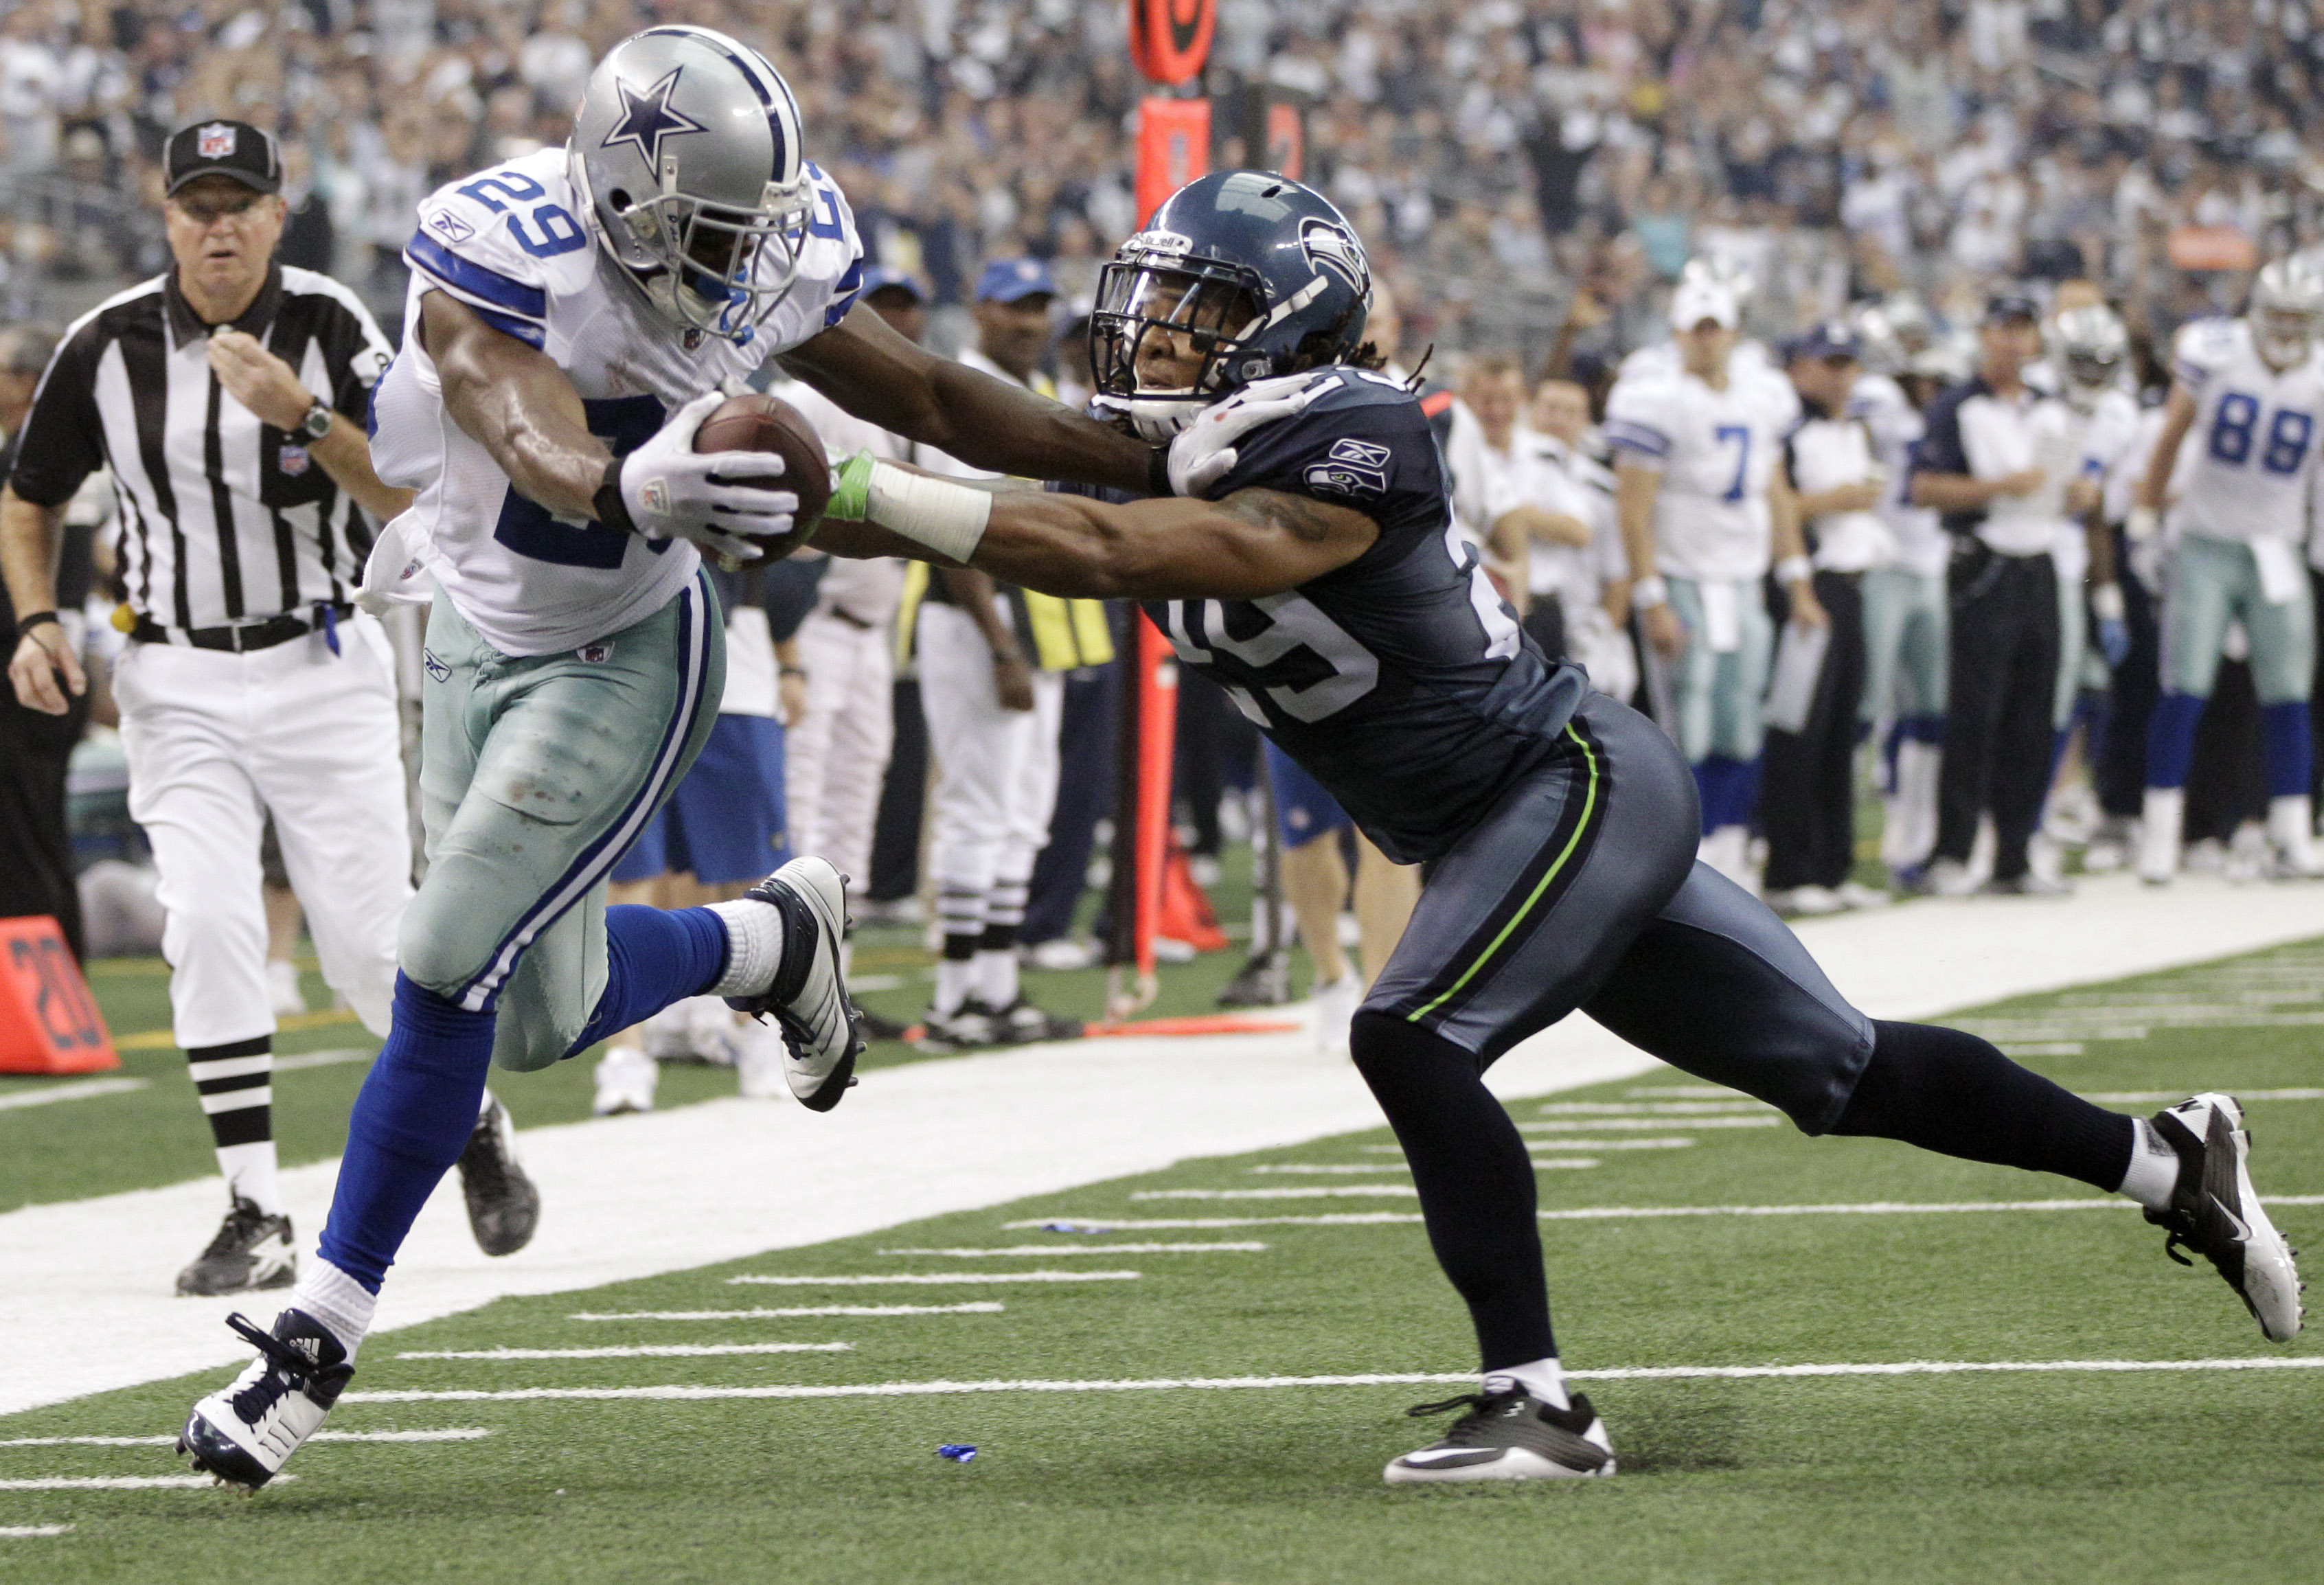 Cowboys Blog - Boys vs Hawks: Time to see what's really under the hood